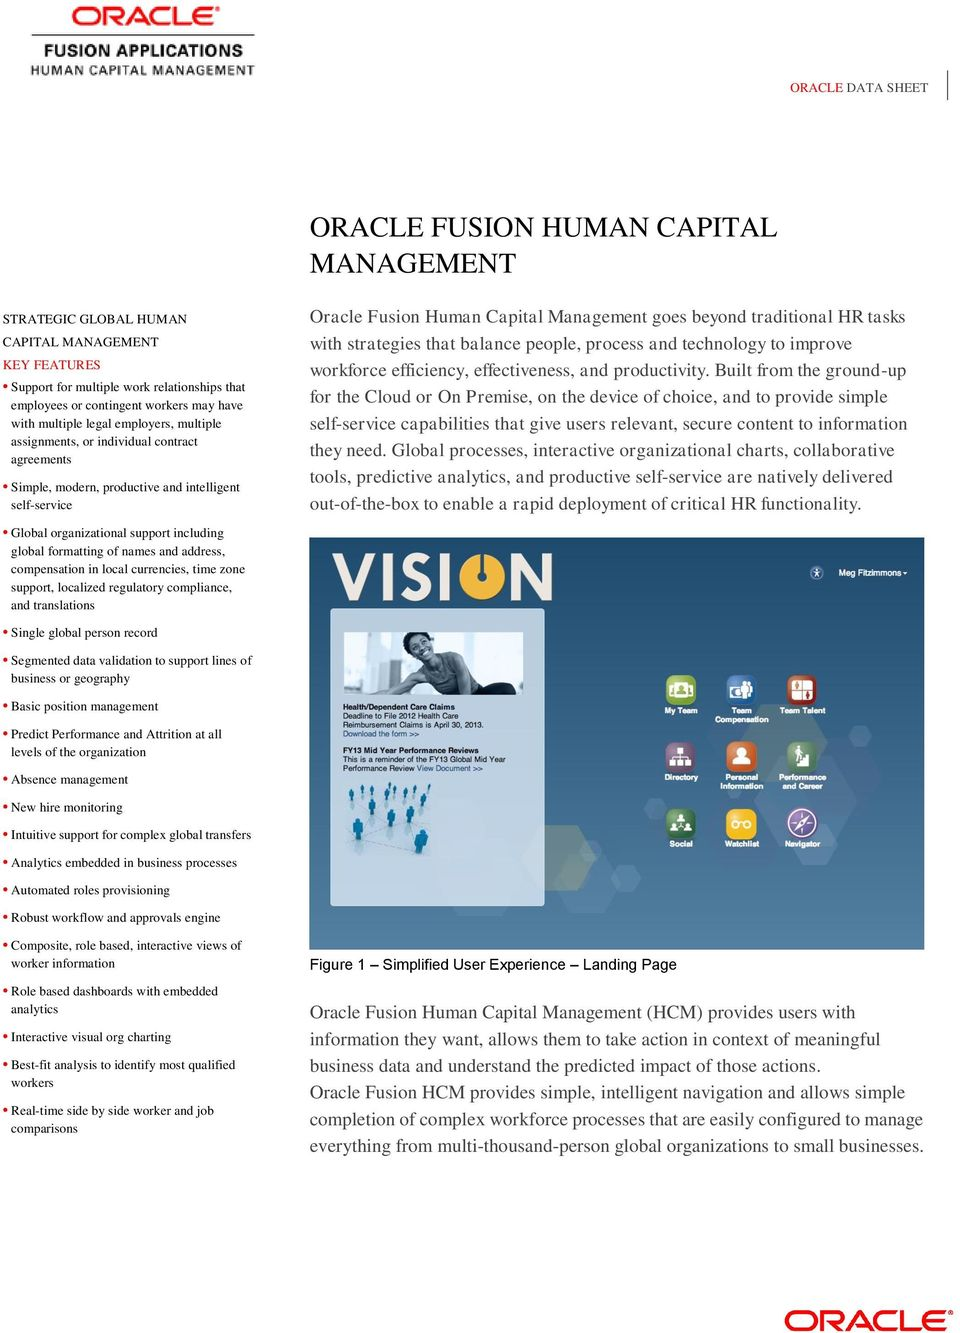 address, compensation in local currencies, time zone support, localized regulatory compliance, and translations Oracle Fusion Human Capital Management goes beyond traditional HR tasks with strategies